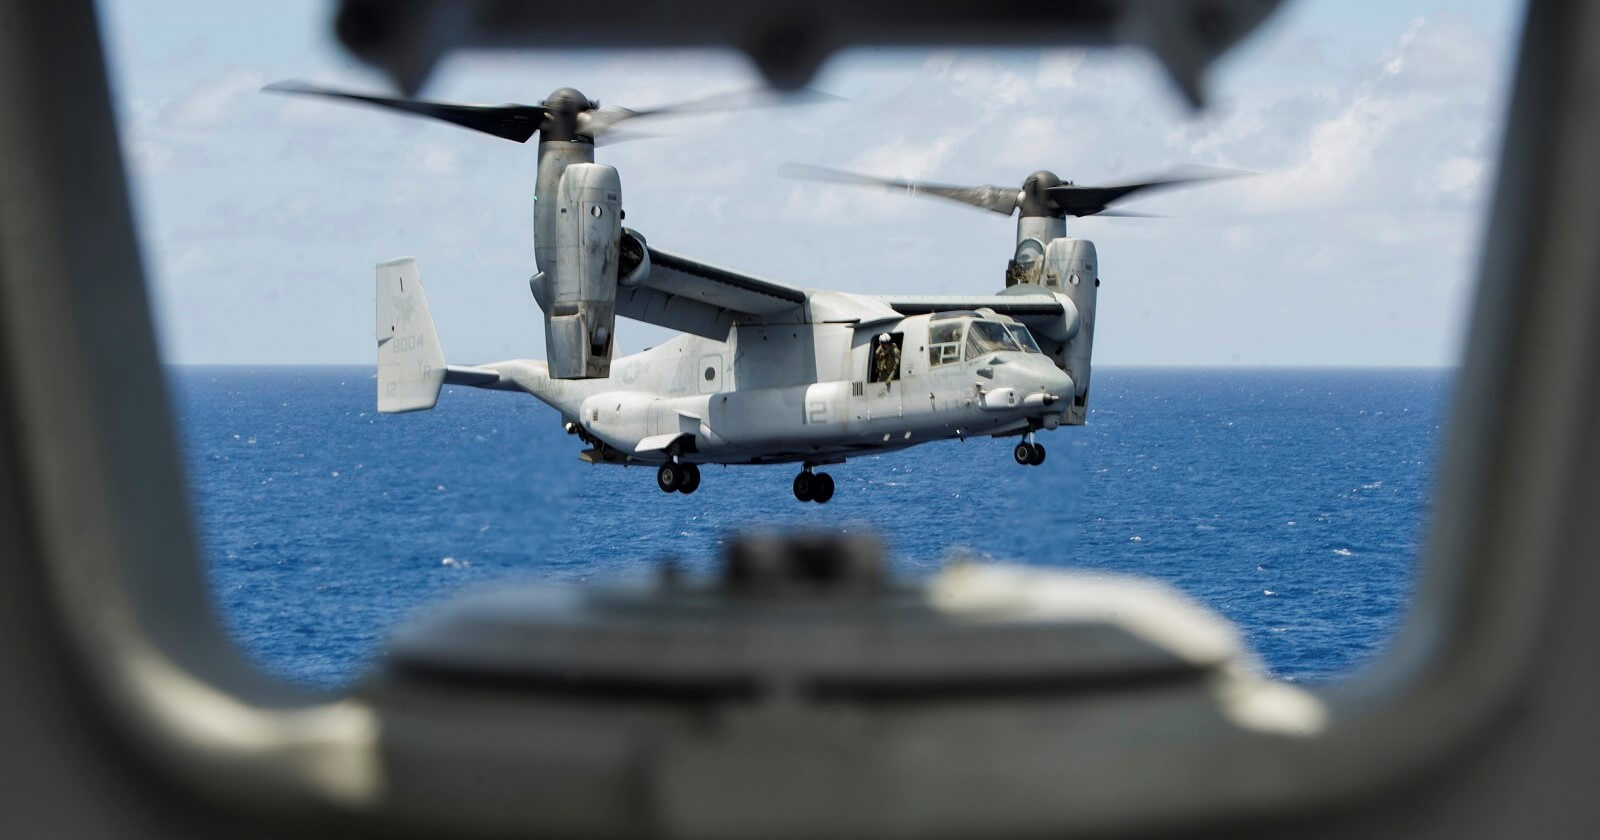 An MV-22 Osprey prepares to land on the USS America in the Pacific Ocean (Photo: US Pacific Fleet/Flickr)